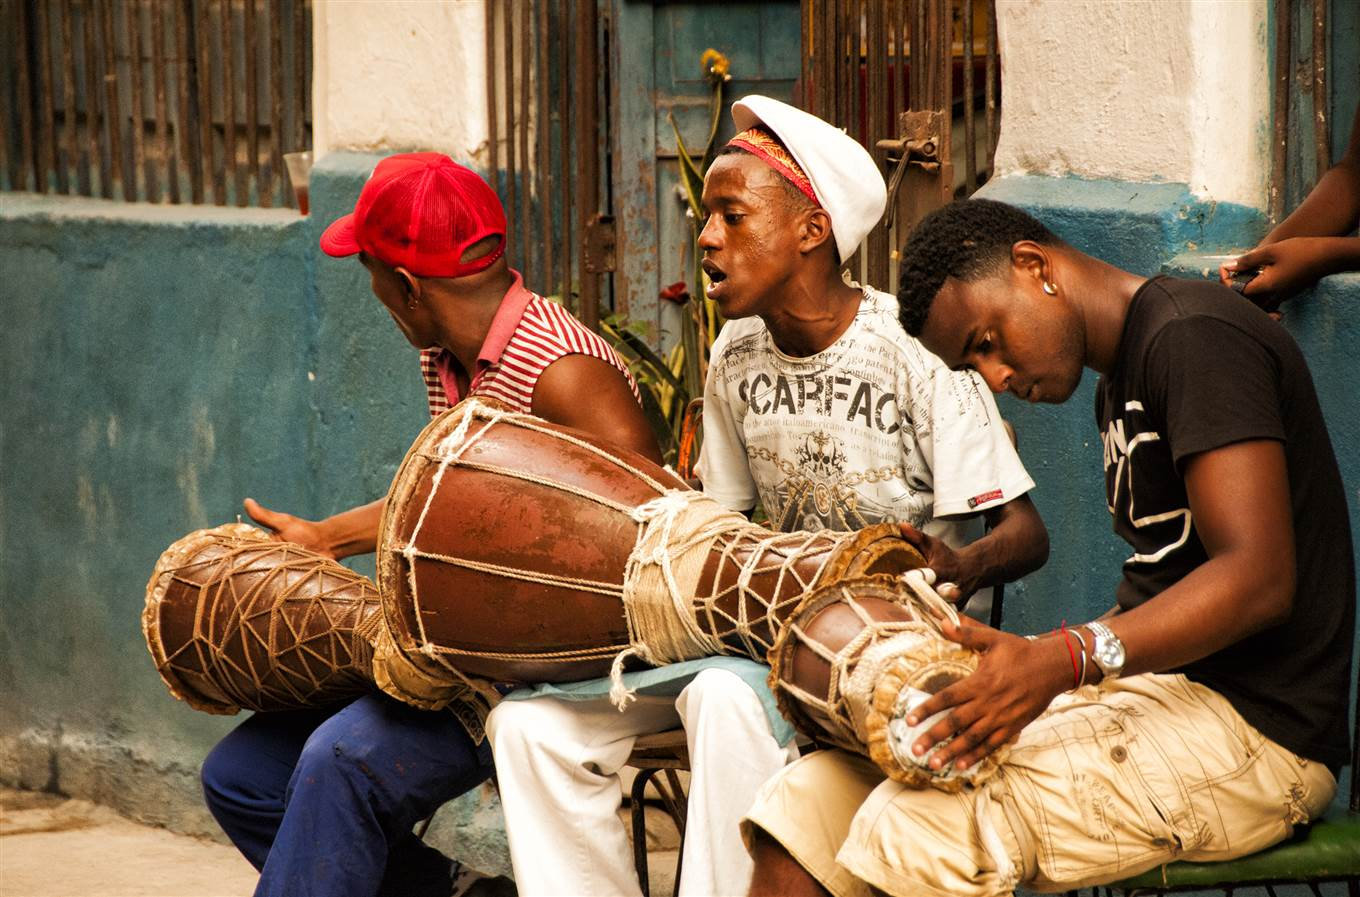 Photo: http://havana-live.com/news/this-afro-cuban-life/